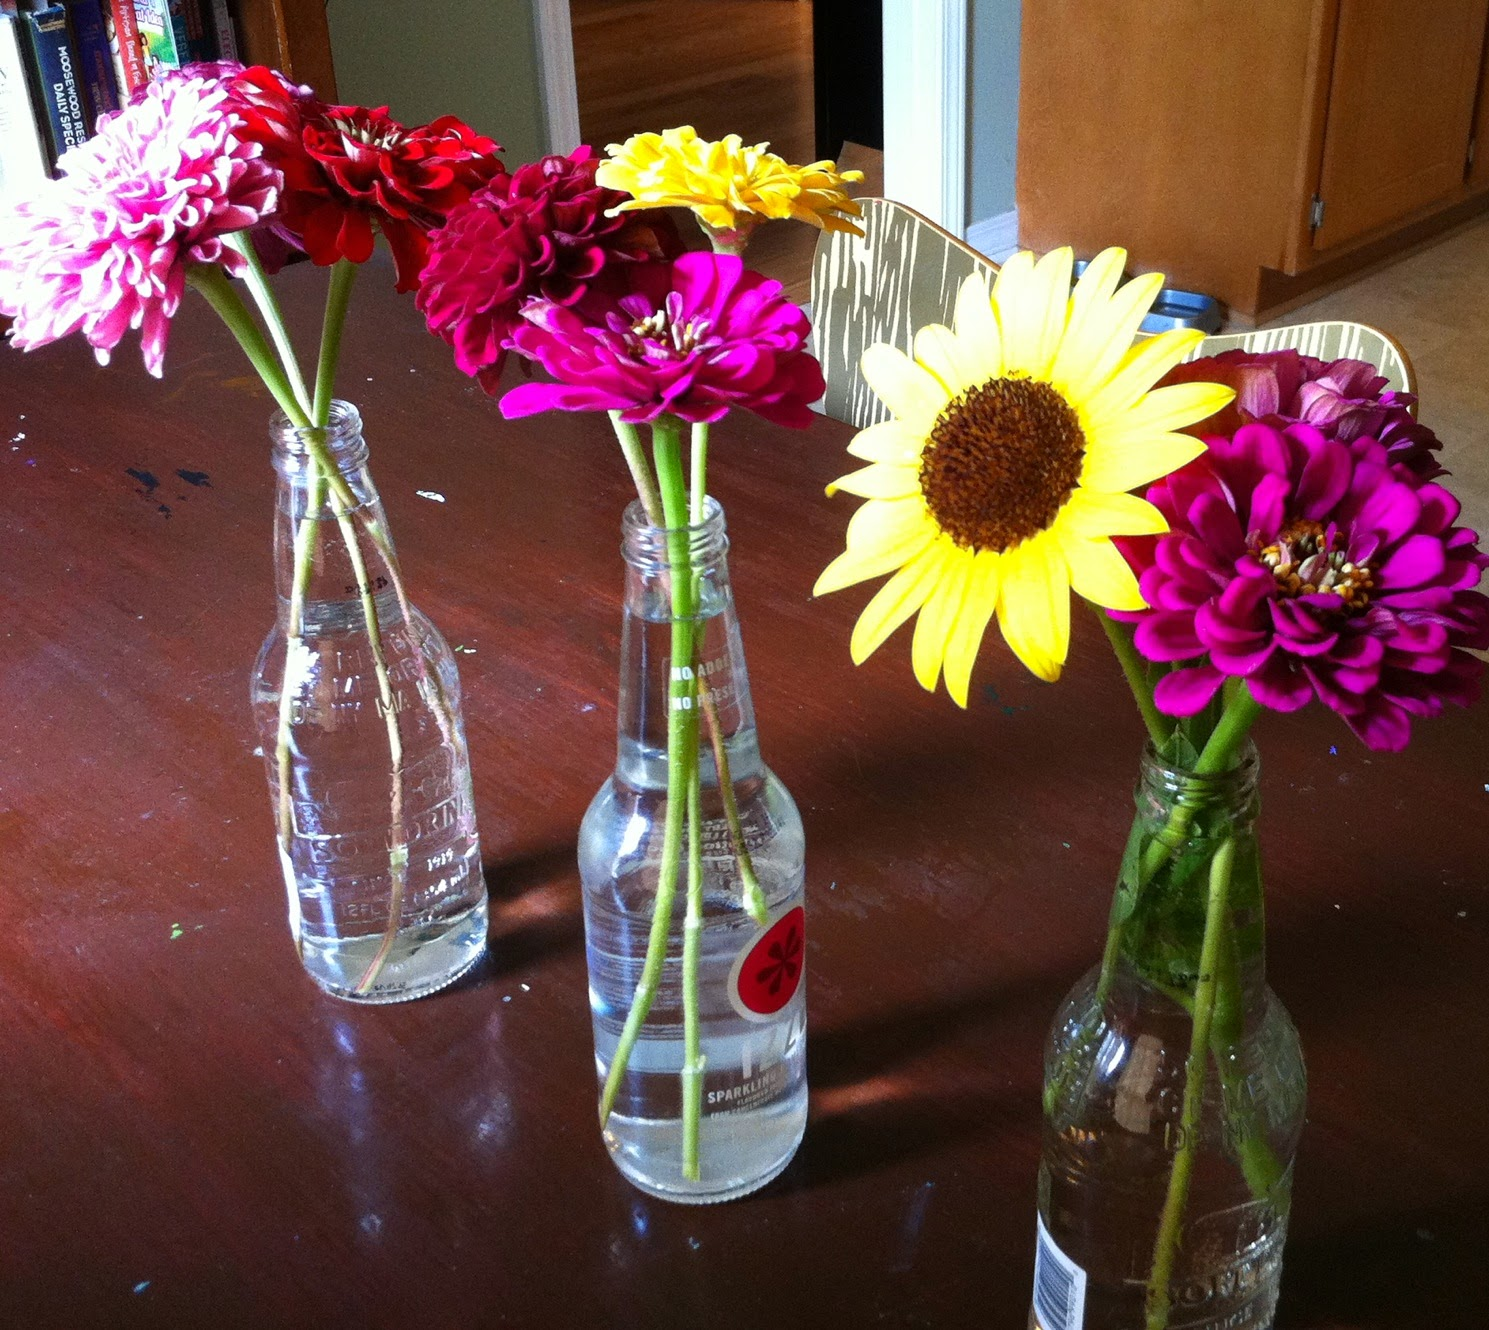 zinnias, sunflowers, fresh flowers, vases, glass bottles